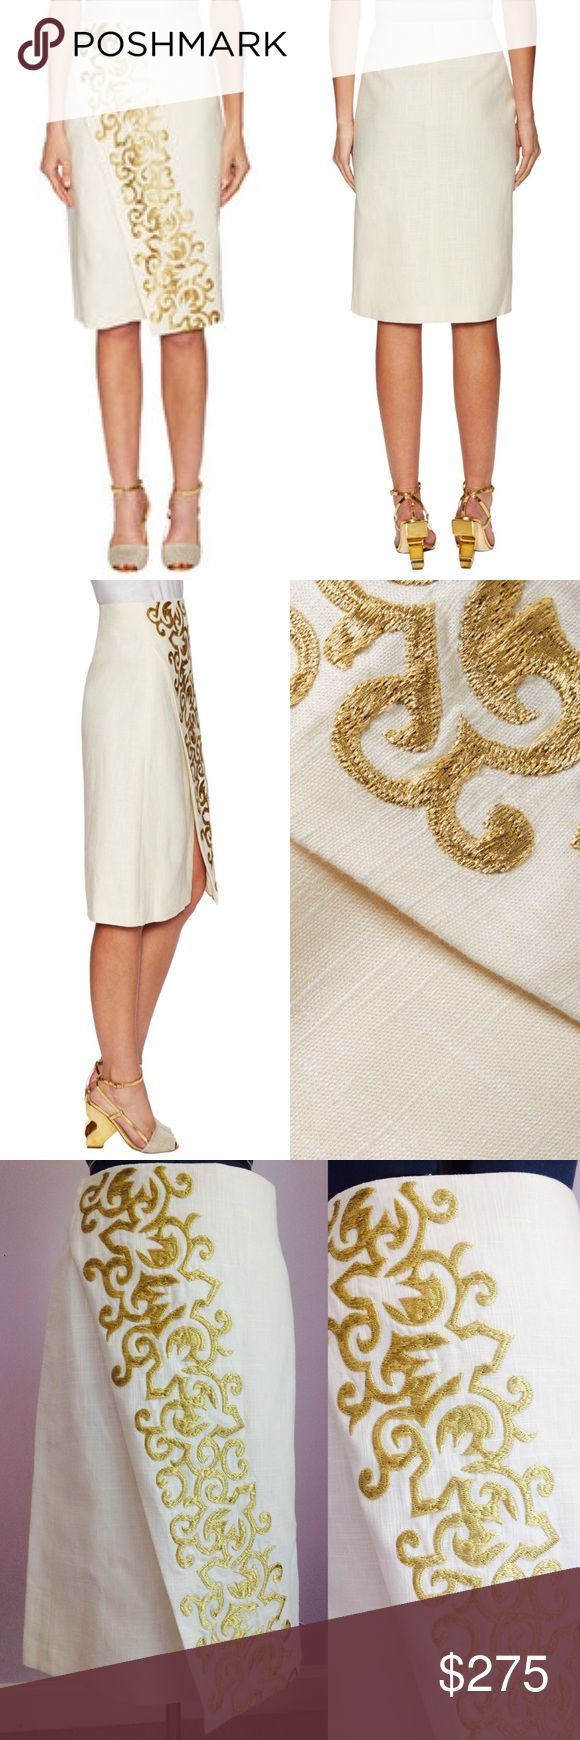 TORY BURCH Kathleen Ivory Embroidered Gold Skirt TORY BURCH Kathleen Ivory Embroidered Gold Skirt. Size 2. New with tags. Shell: 55% Linen - 45% Viscose. Lining: 100% Cotton. A-line. Below the knee. Sits at hip. Wrap effect with Asymmetric front slit. Metallic Embroidery detail throughout. Hidden zipper with hook-and-eye closure at center back. Returns: this skirt is as gorgeous as delicate. Any sign of wear, stains or removal of tags will not be accepted for return of this item. Thank you…